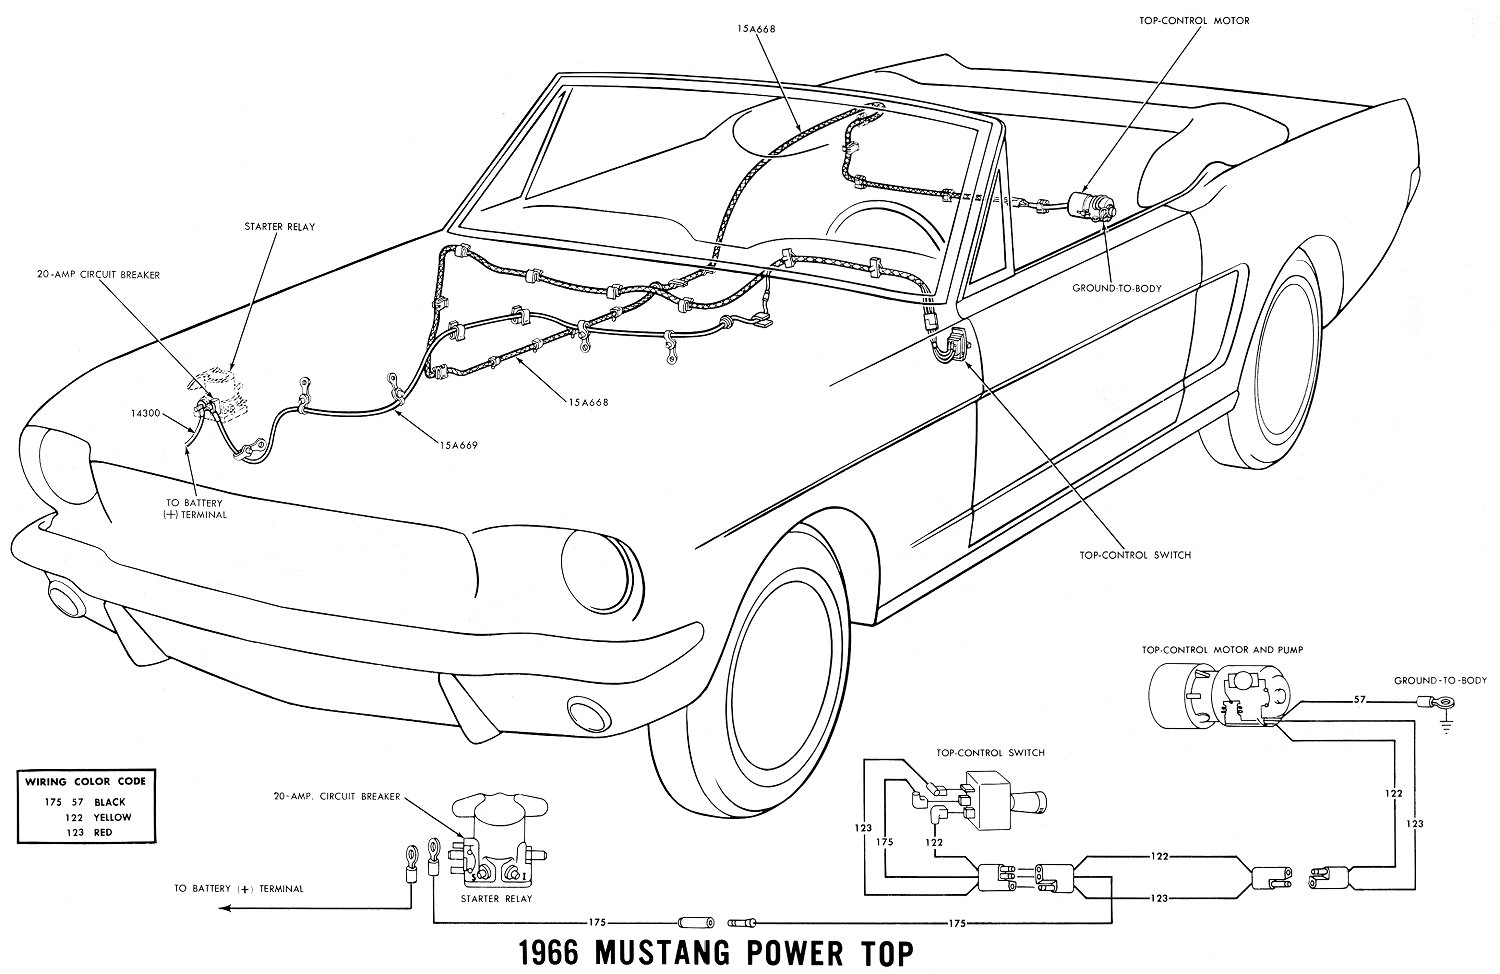 1966 mustang wiring diagrams - average joe restoration 1966 ford mustang heater wiring diagram 1966 ford mustang fuse box diagram